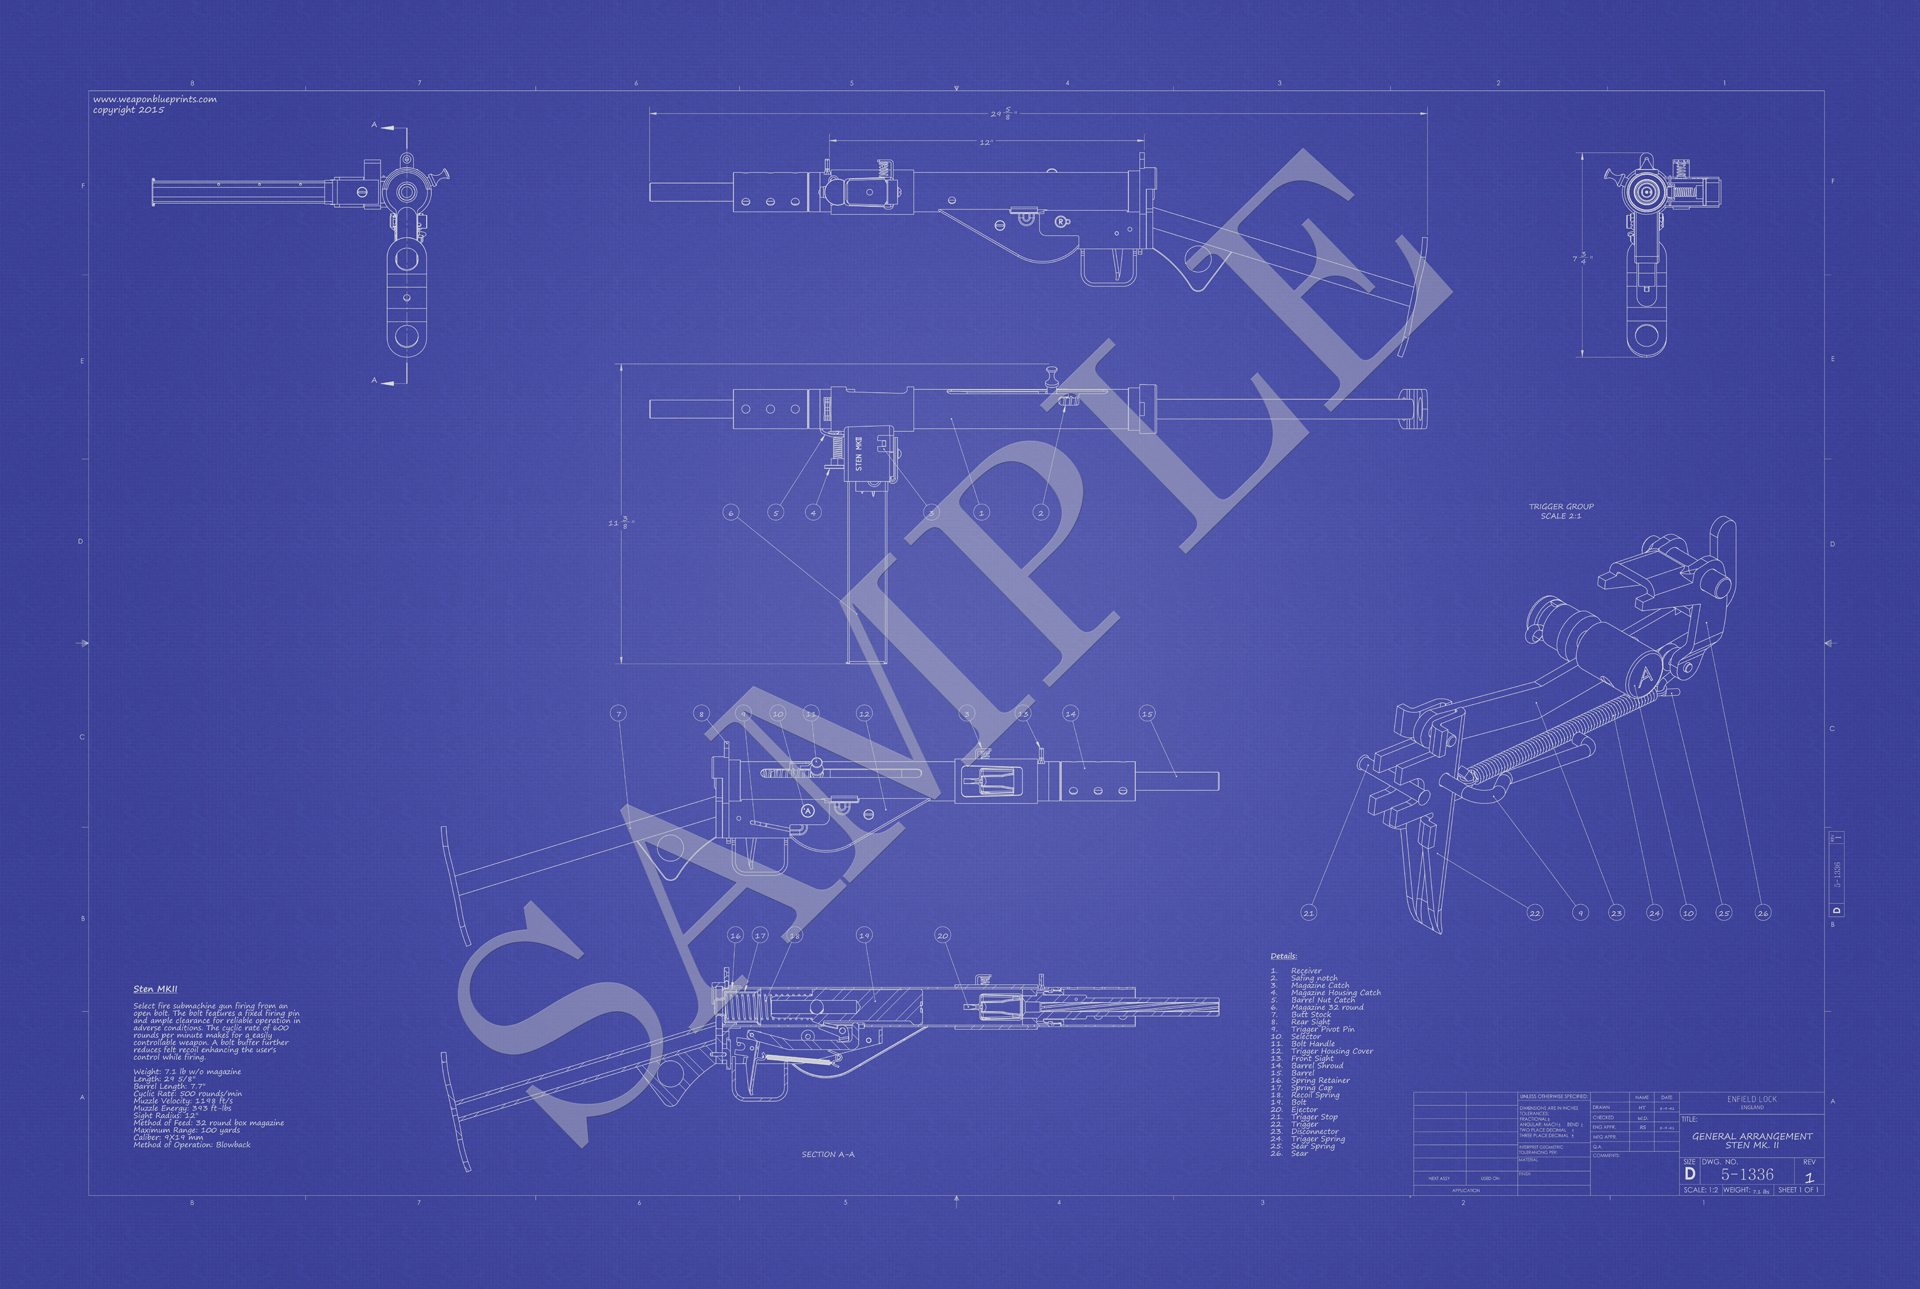 weaponblueprints, Wiring schematic